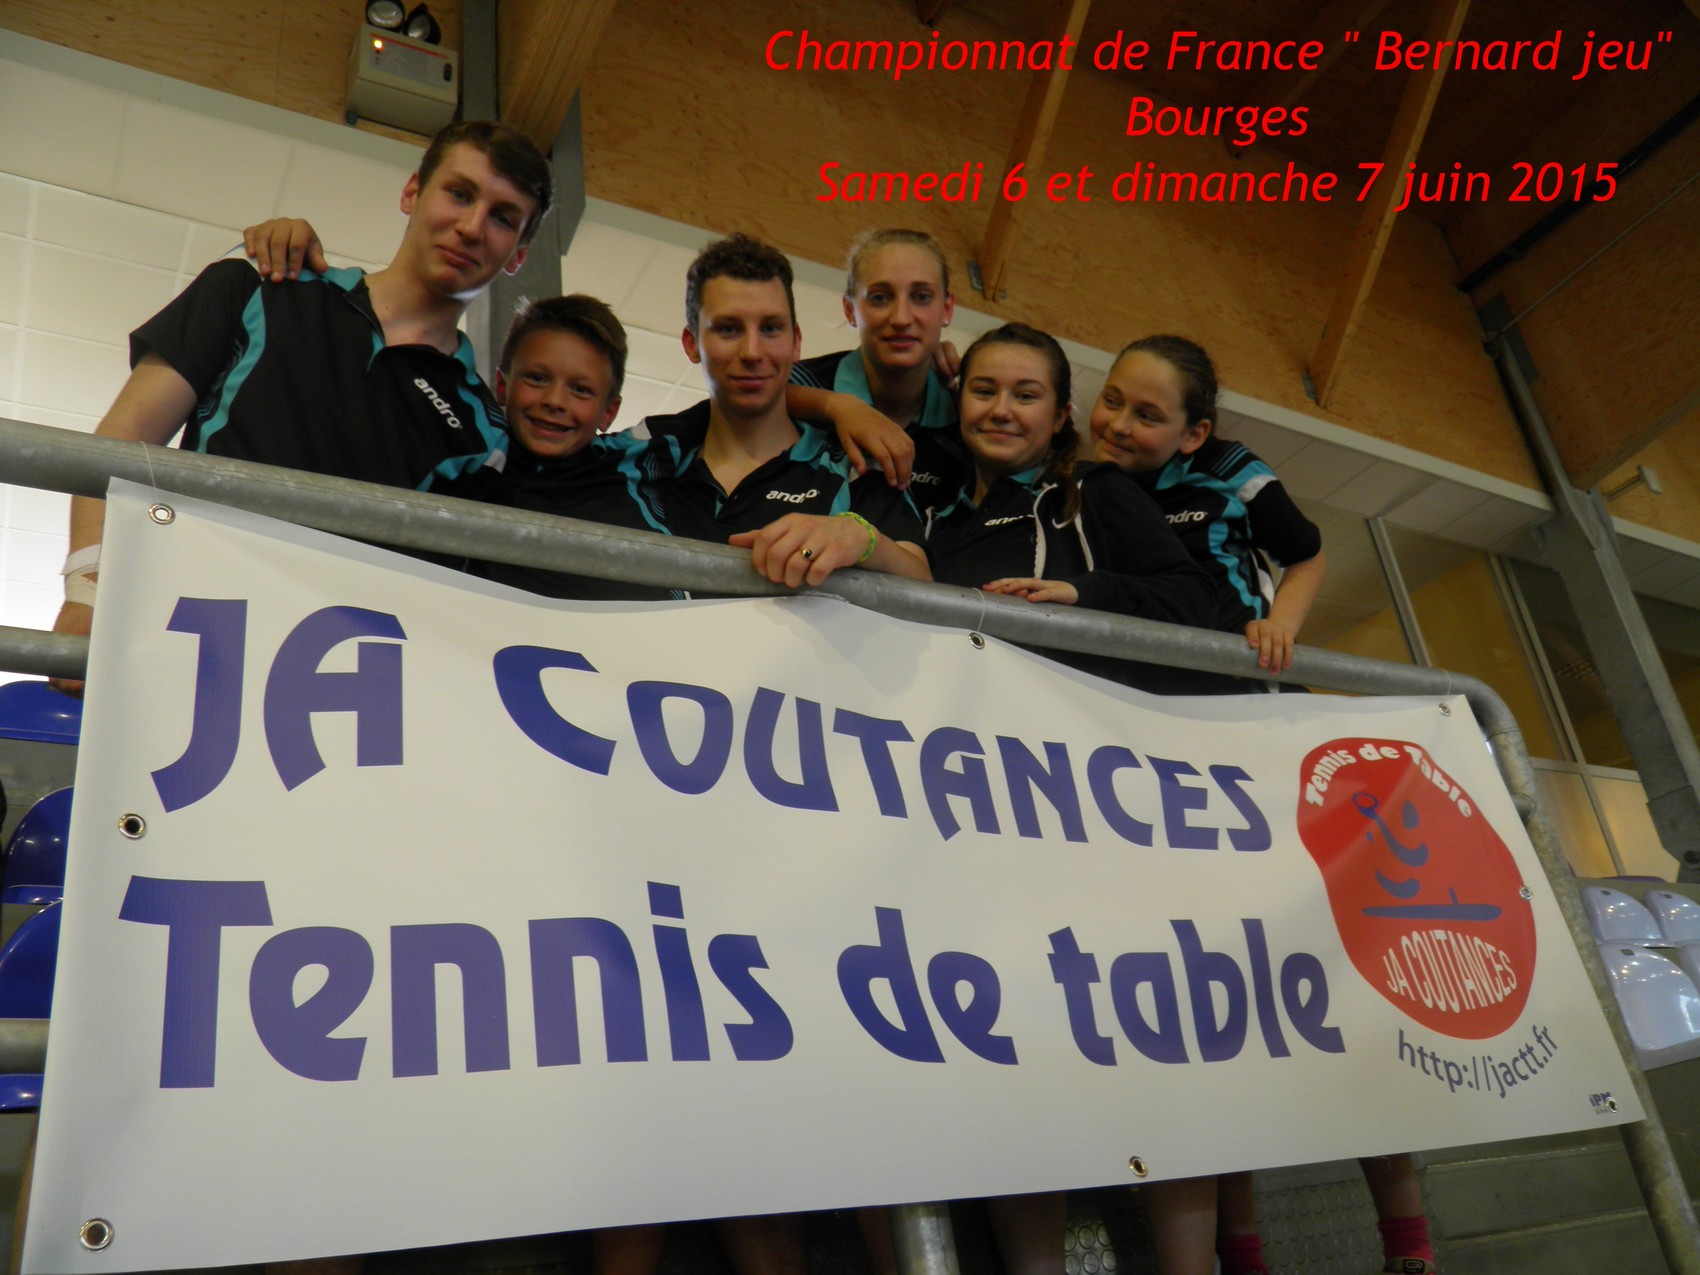 Comite departemental de tennis de table de la manche - Championnat de france de tennis de table ...